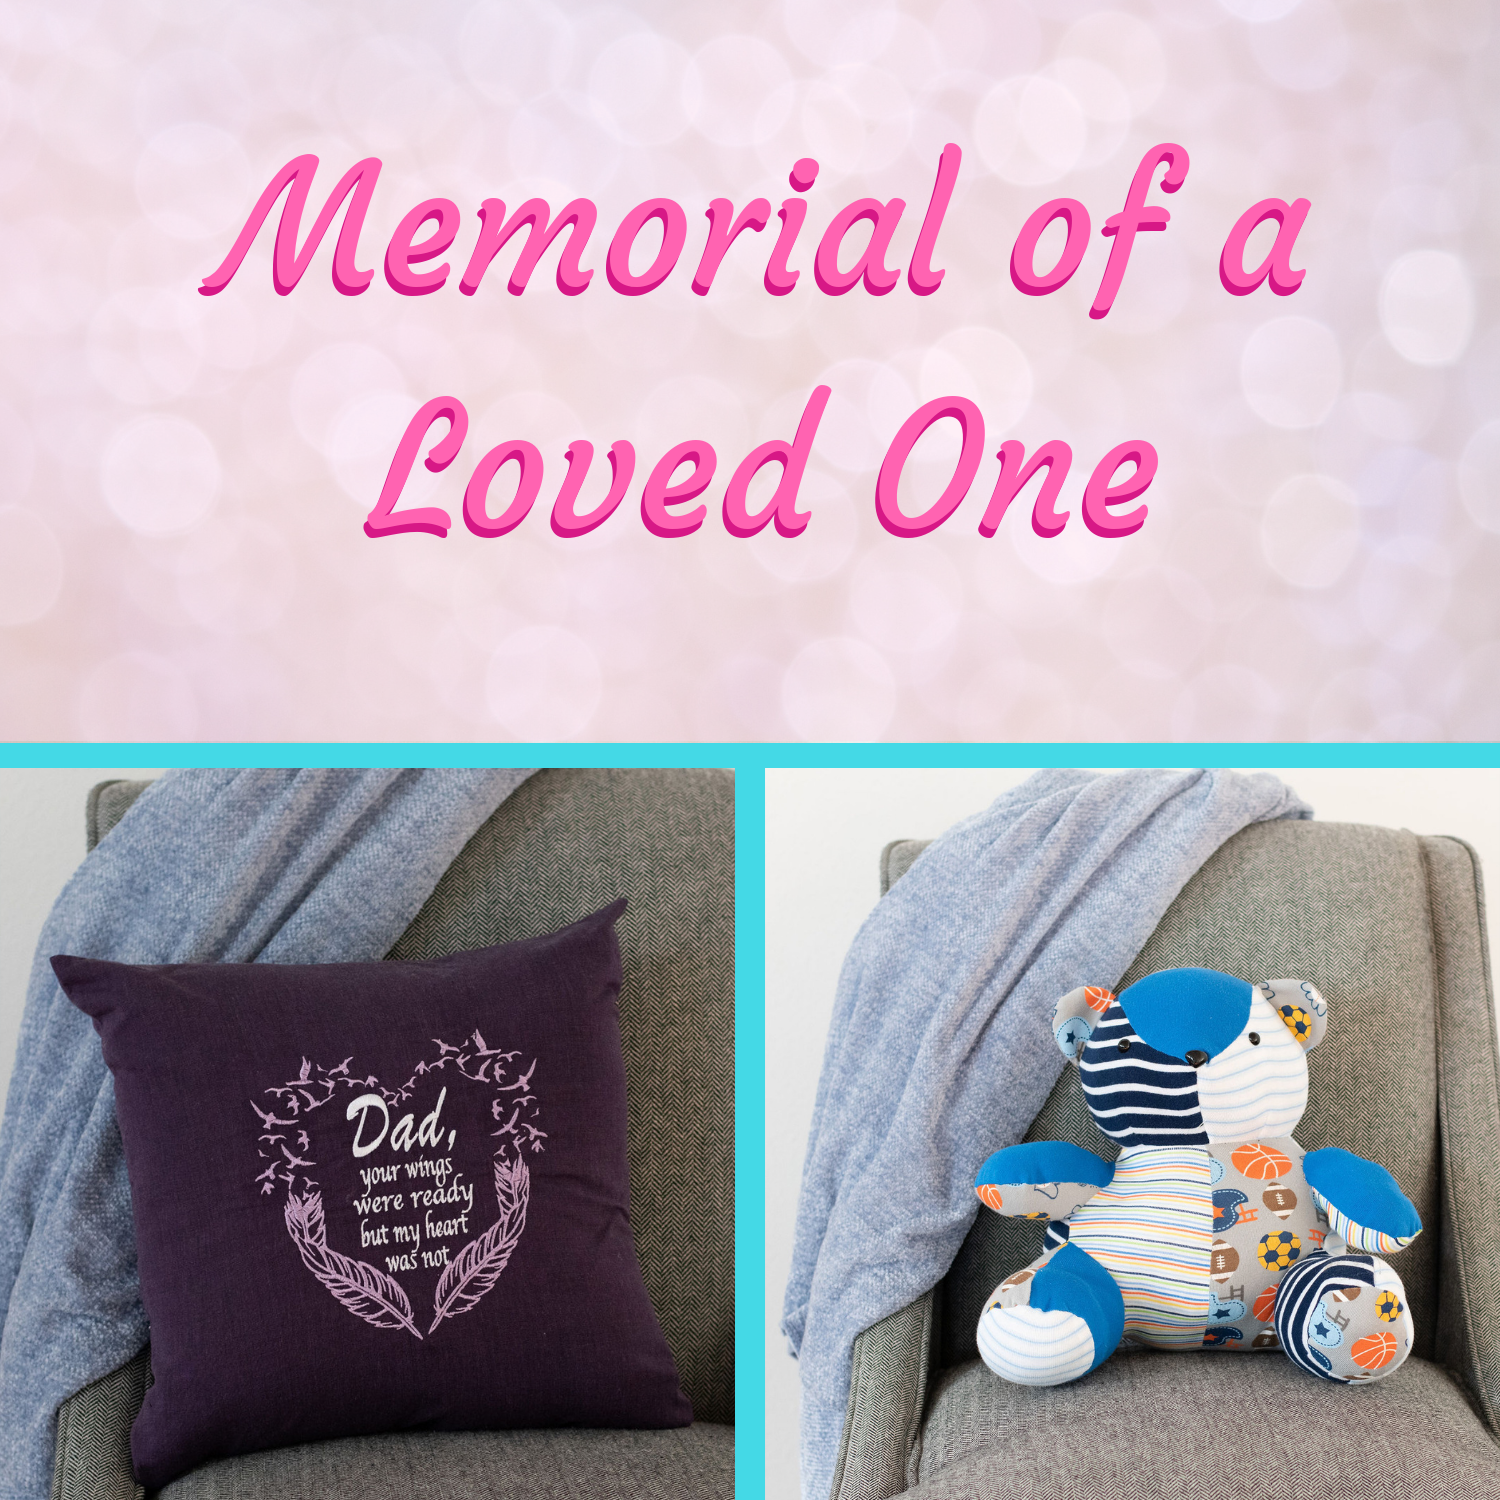 Memorial of a Loved One.png